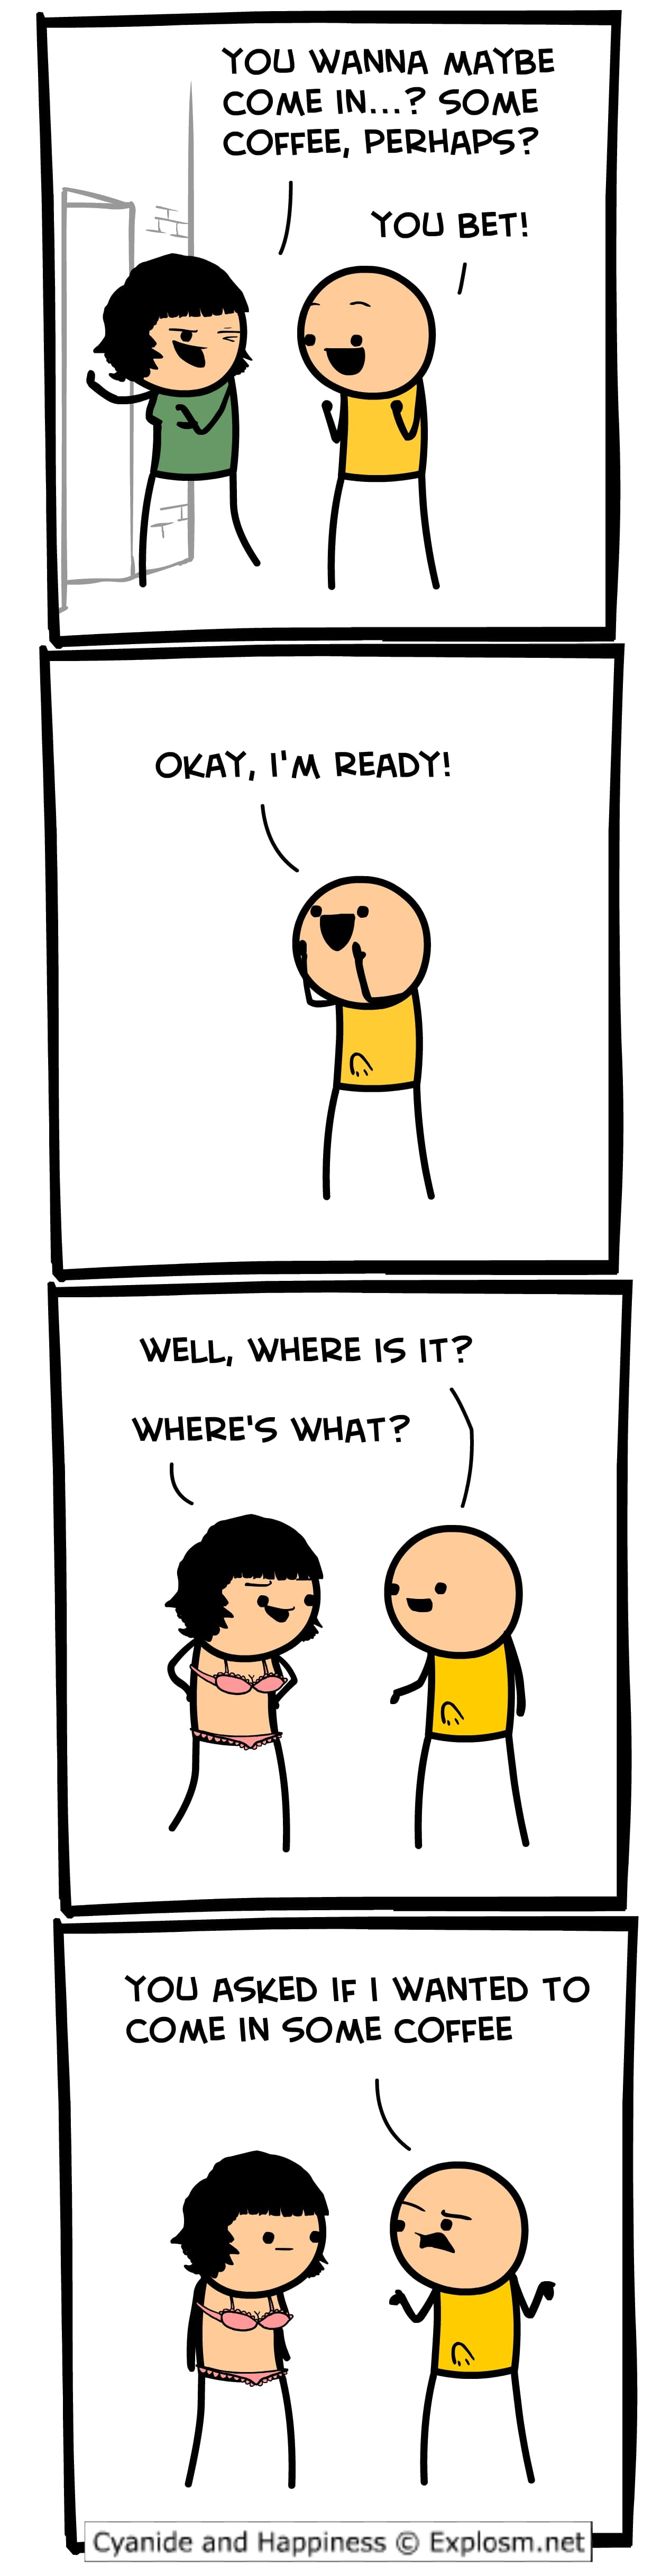 'Cyanide and Happiness' has been a longstanding dark humor comic online. Check out the best memes and panels from the series.